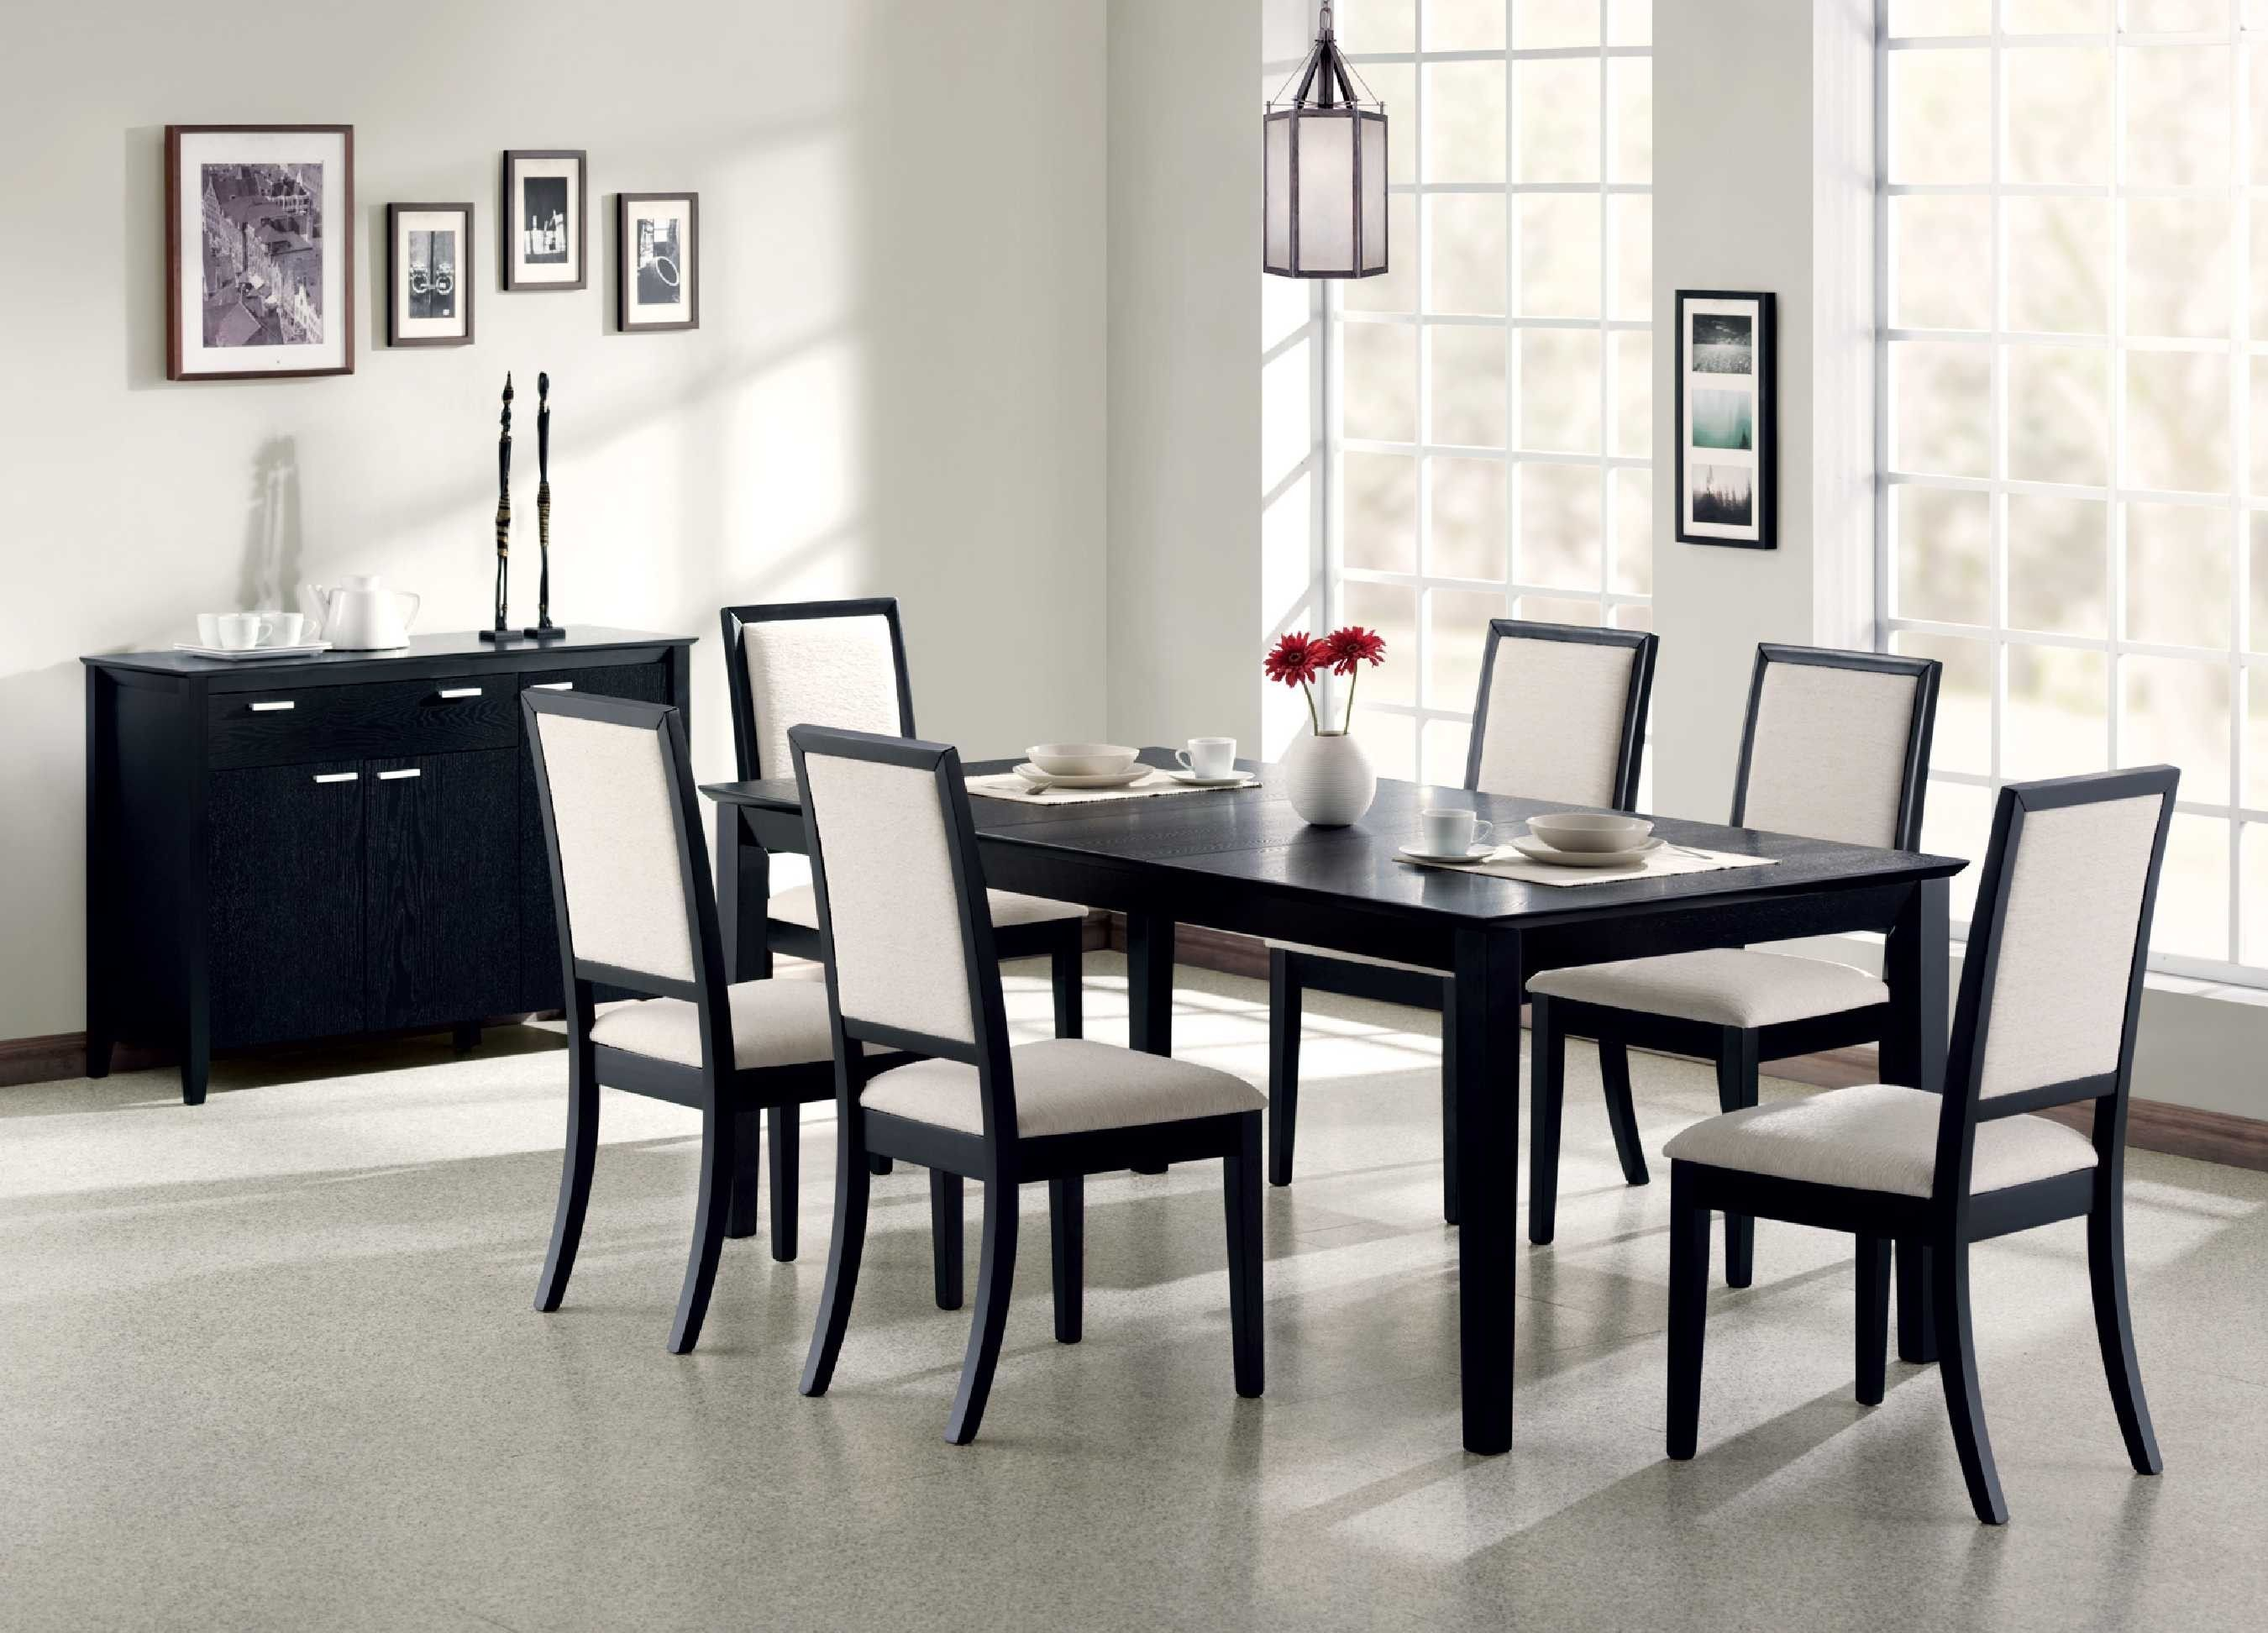 Exceptional Black Wood Kitchen Table Chairs